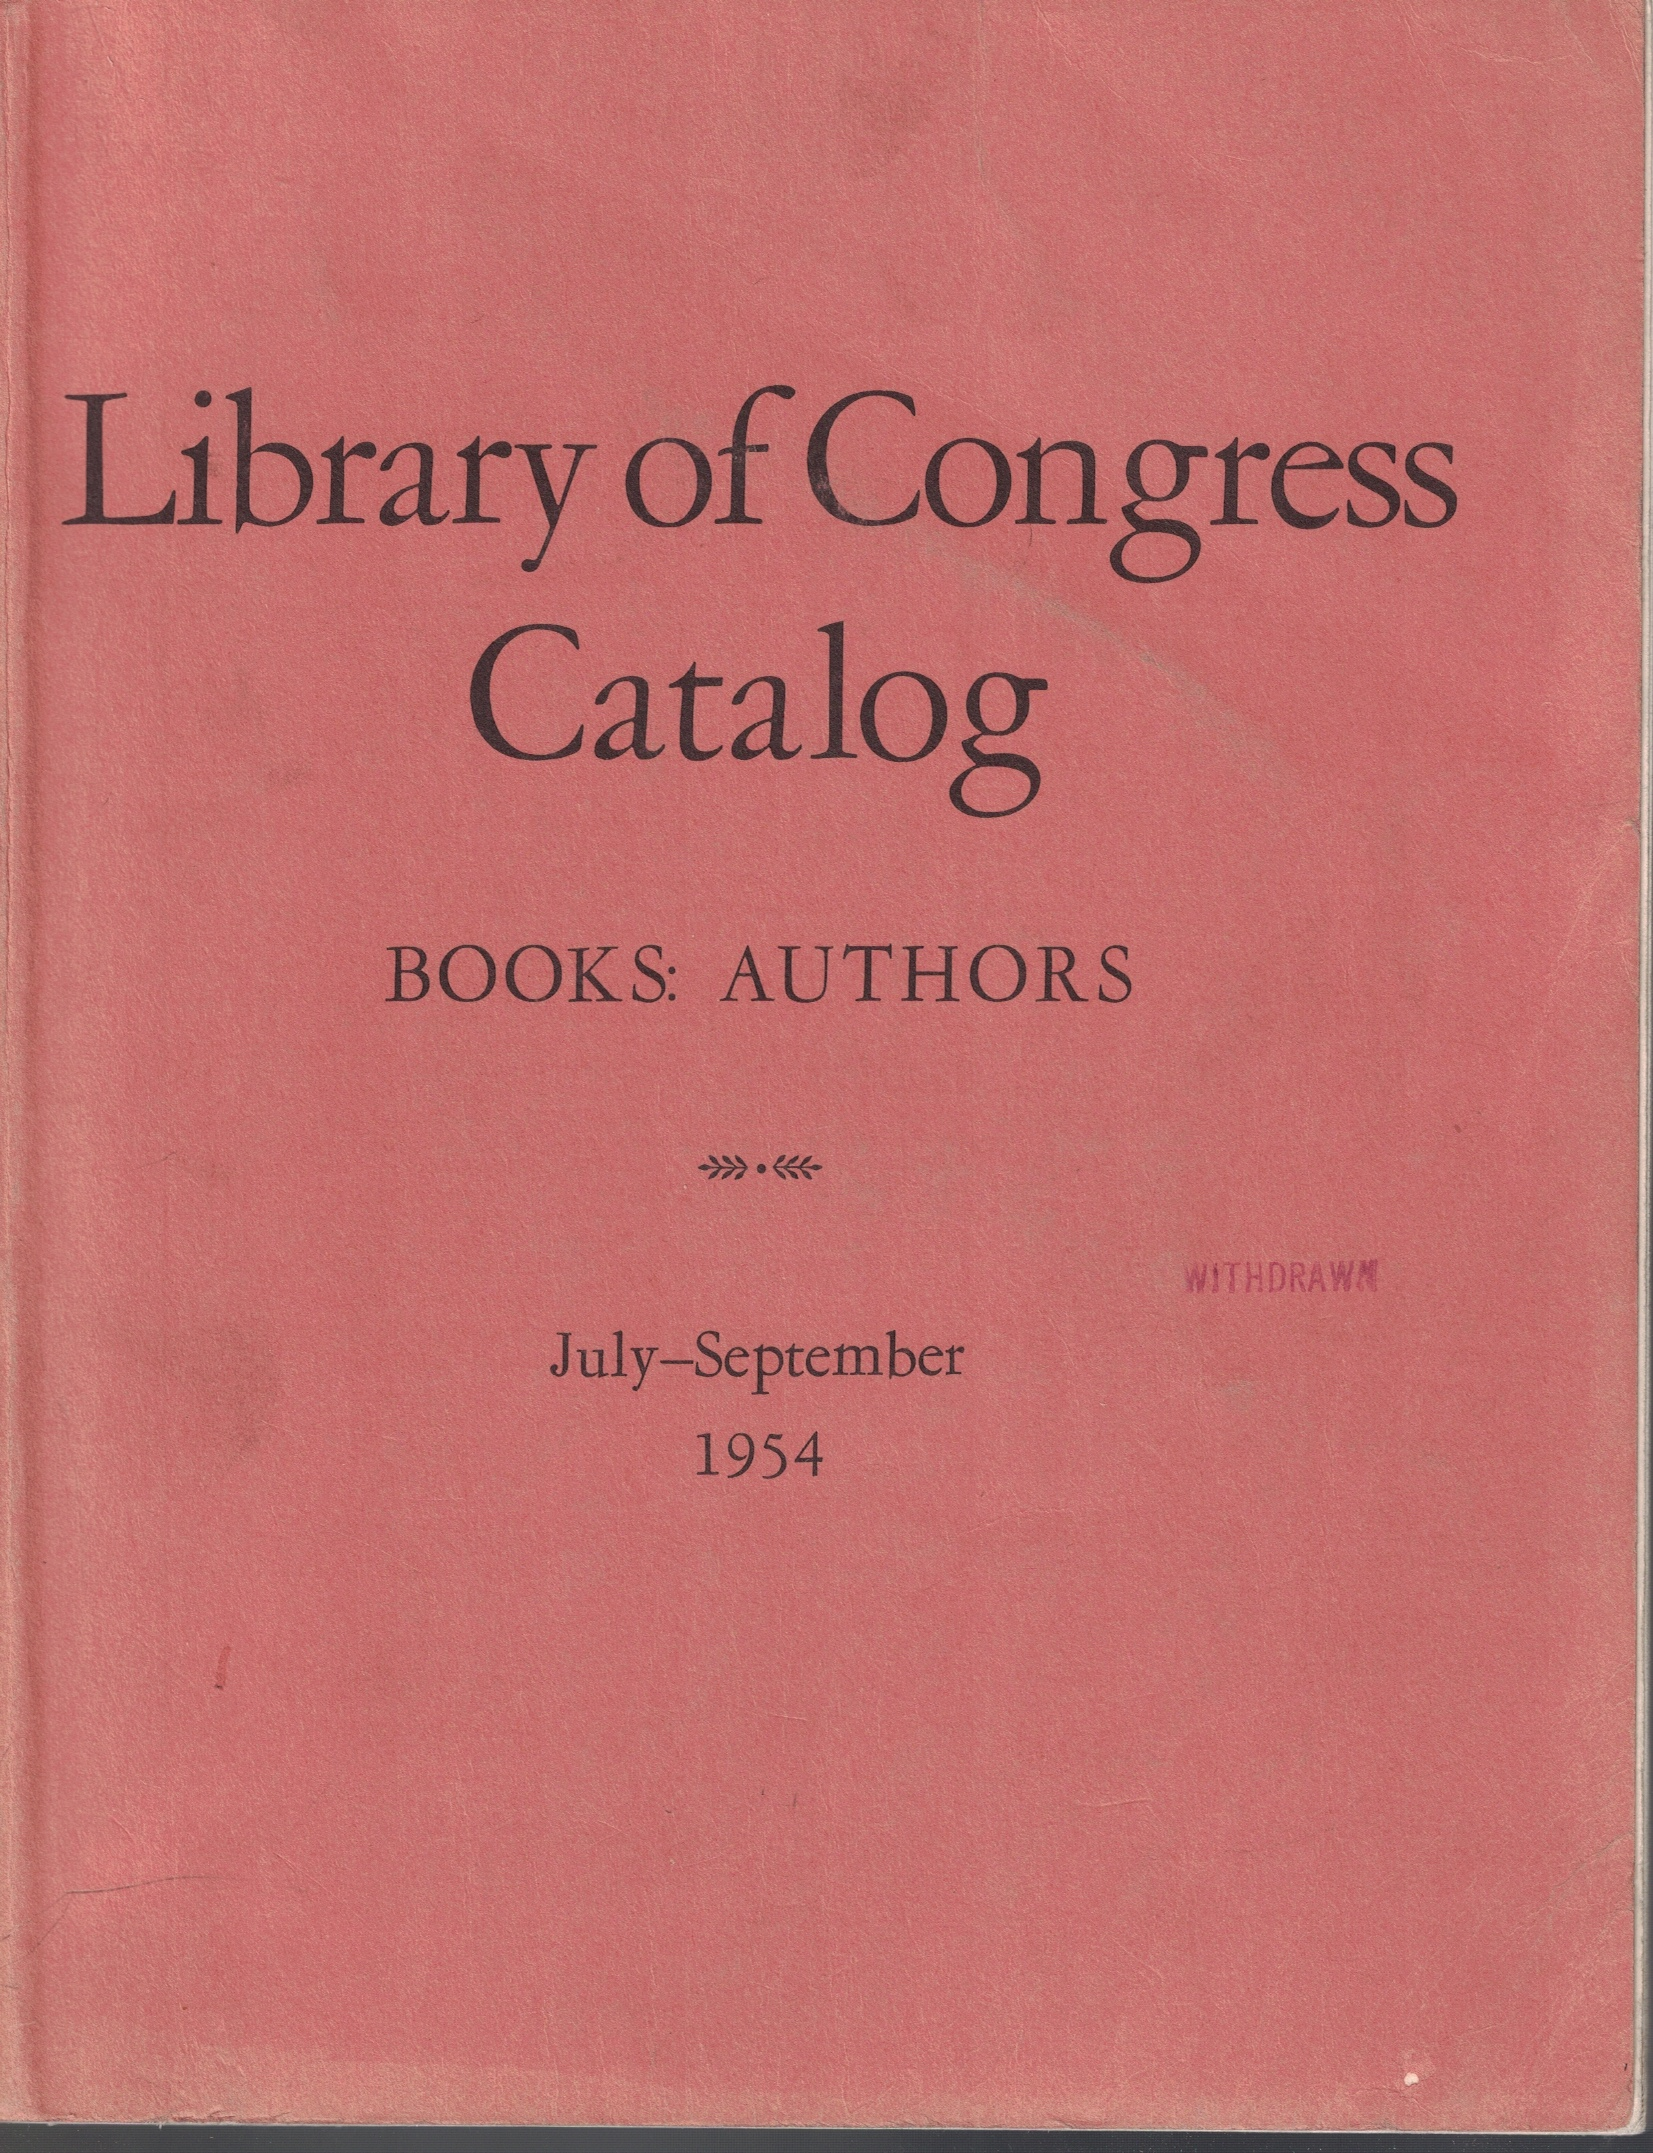 Image for Library of Congress Catalog, A Cumulative List of Works Represented by Library of Congress Printed Cards, July - September 1954; Books: Authors [A-Z]